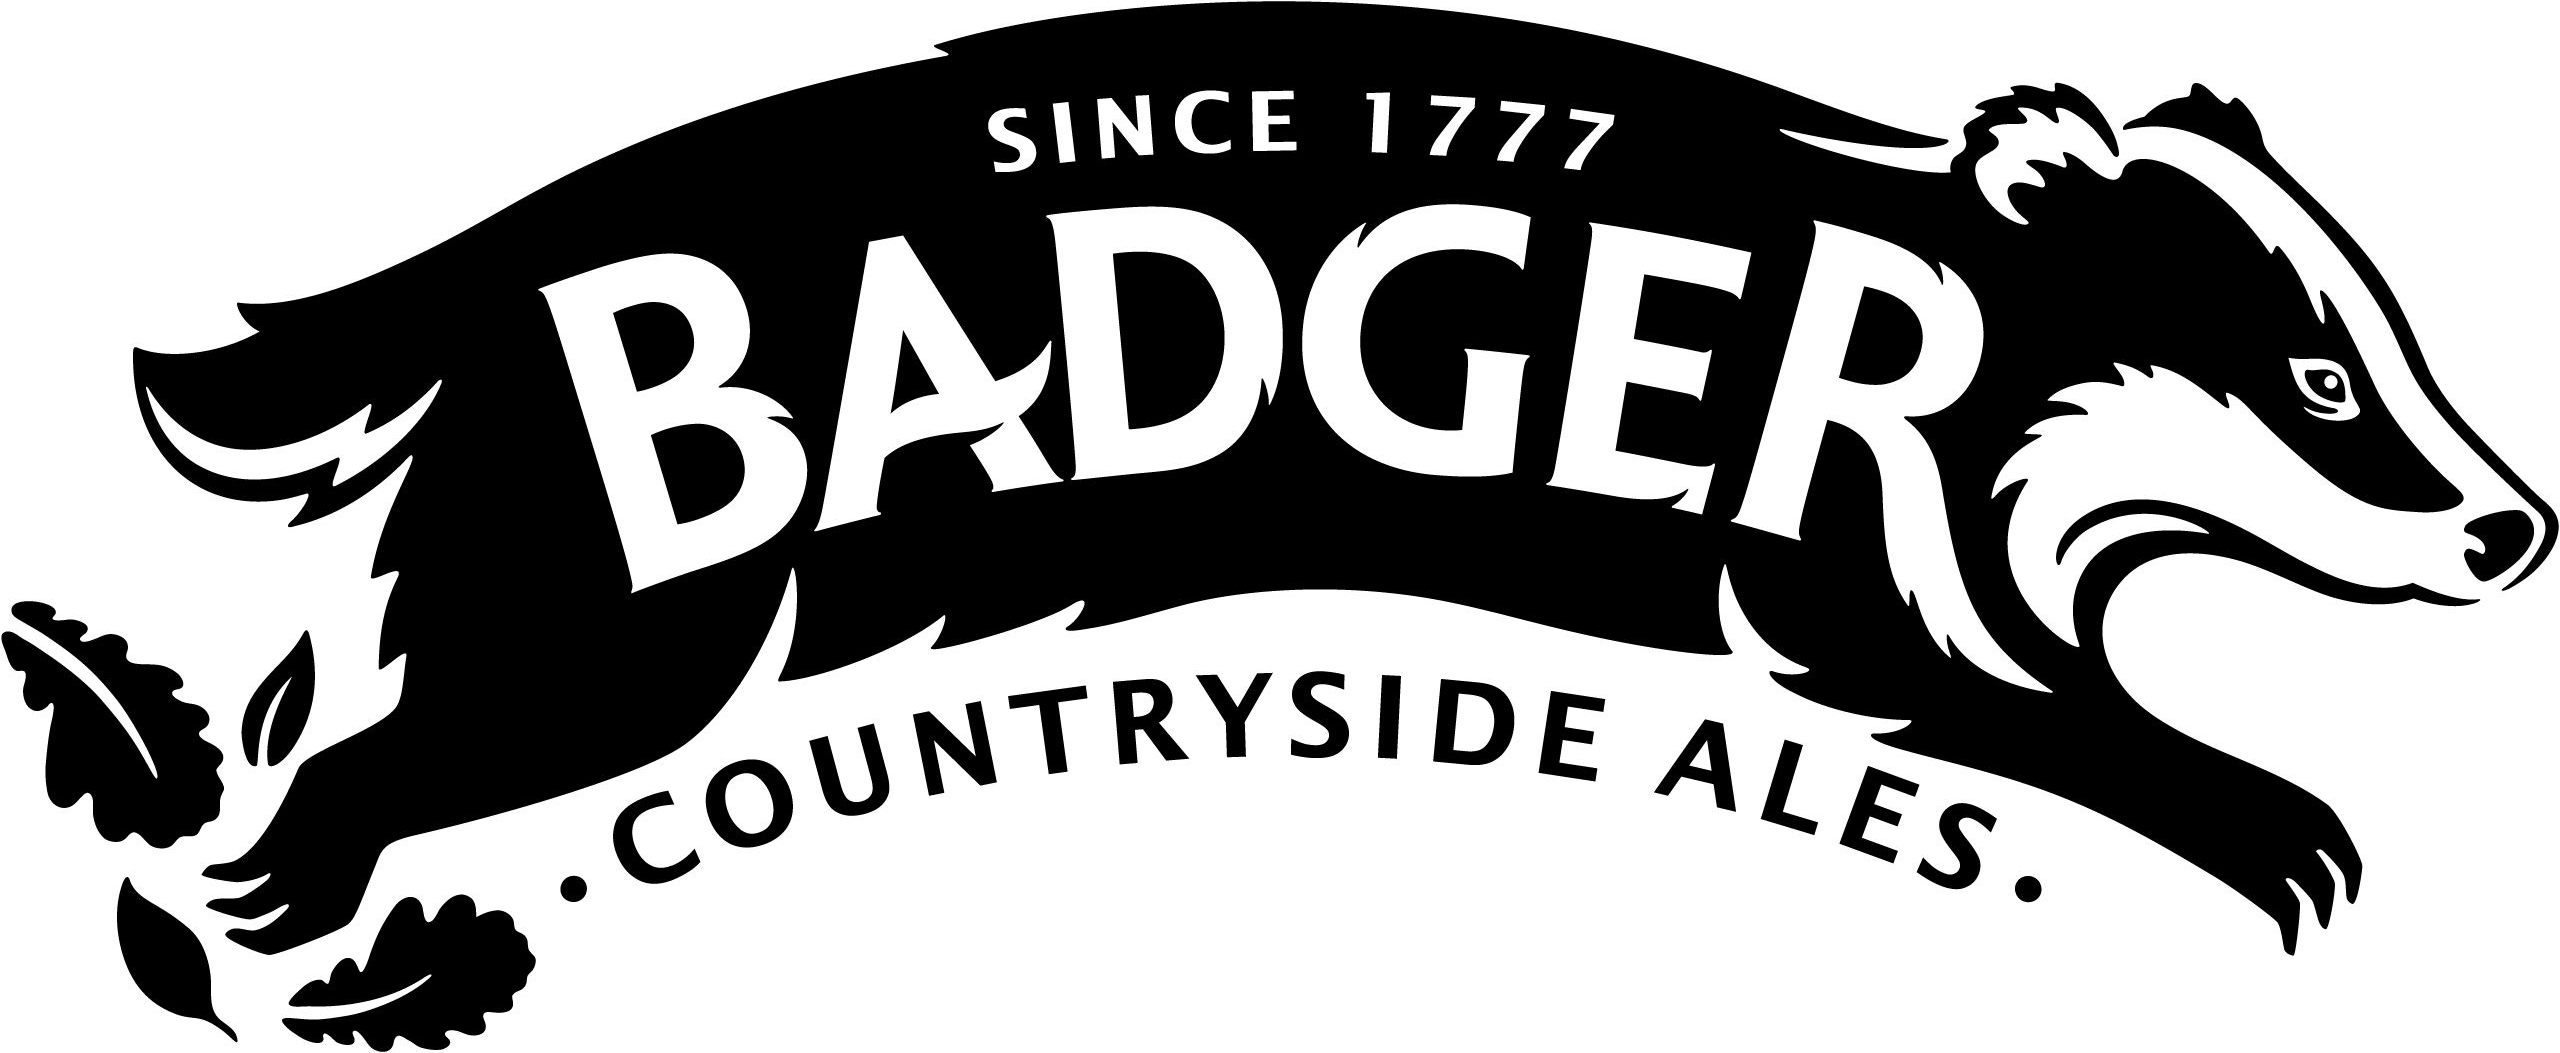 Badger (brewery)